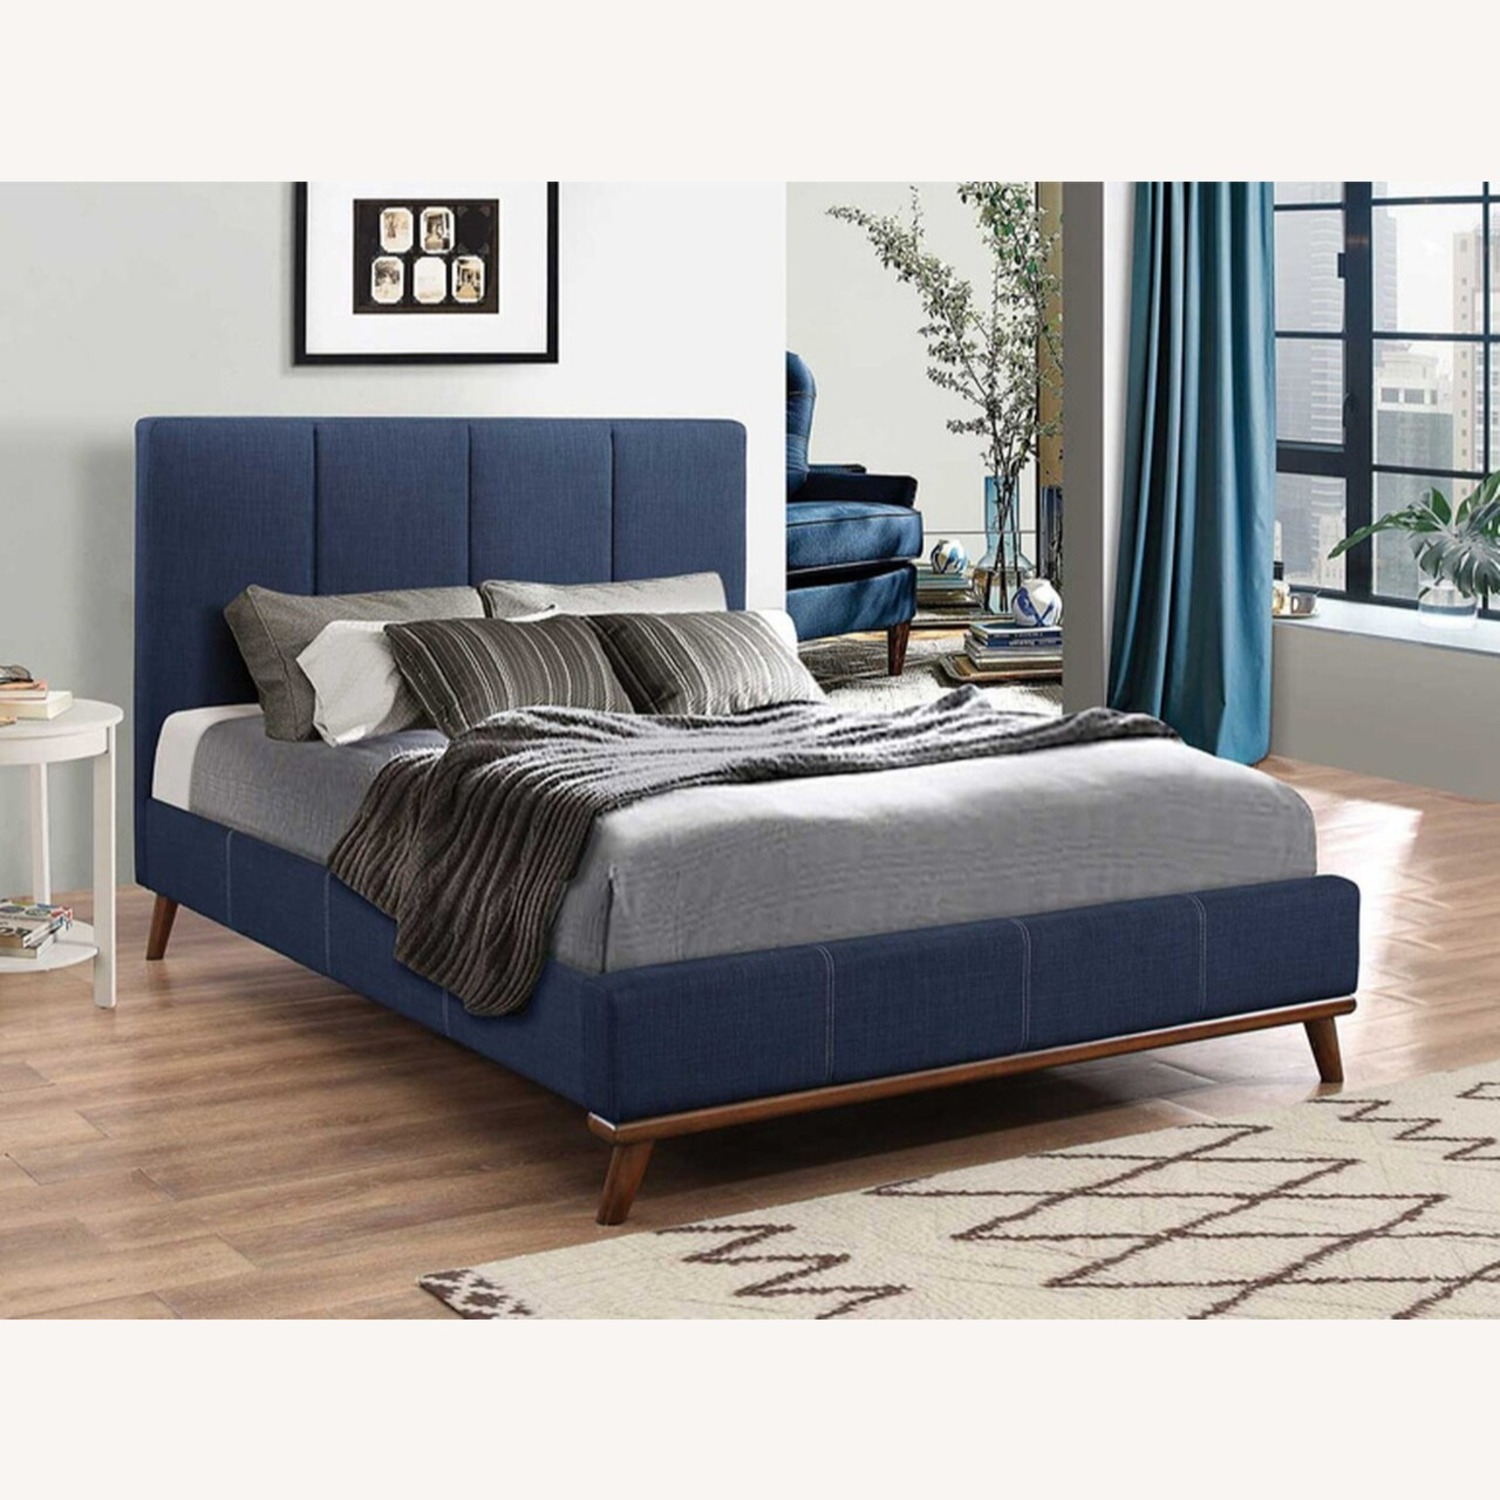 Mid Century Queen Bed In A Blue Fabric Finish - image-2